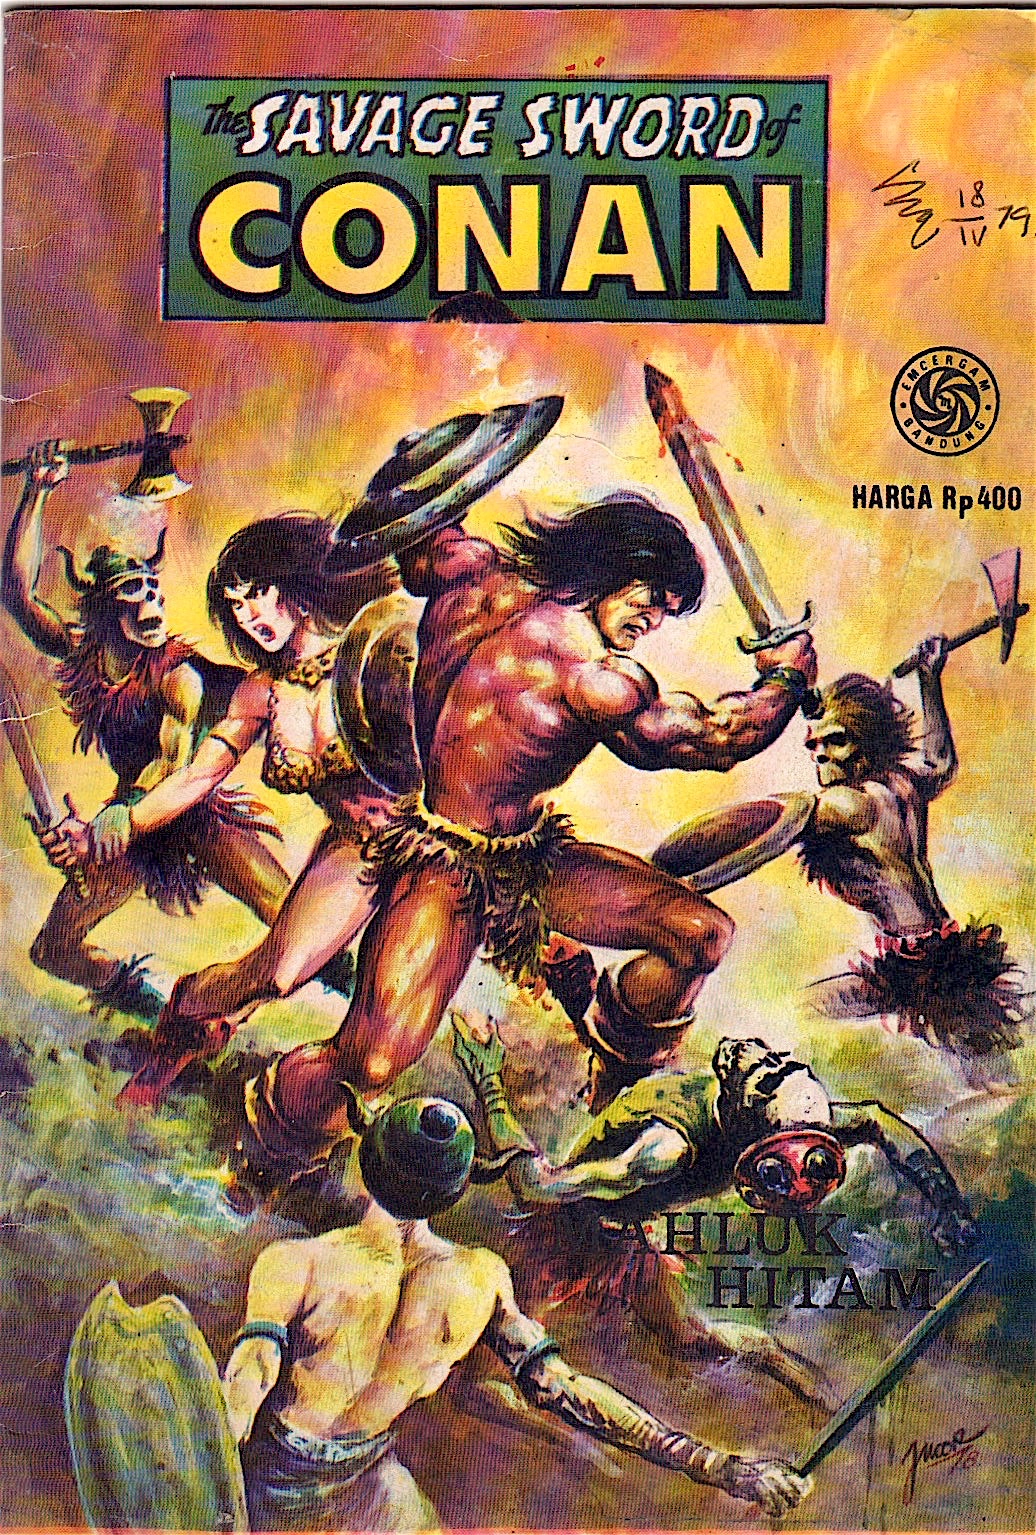 Crom Andrew Smith Regular 5 Pockets Hitam 38 Indonesia The Savage Sword Of Conan Mahluk